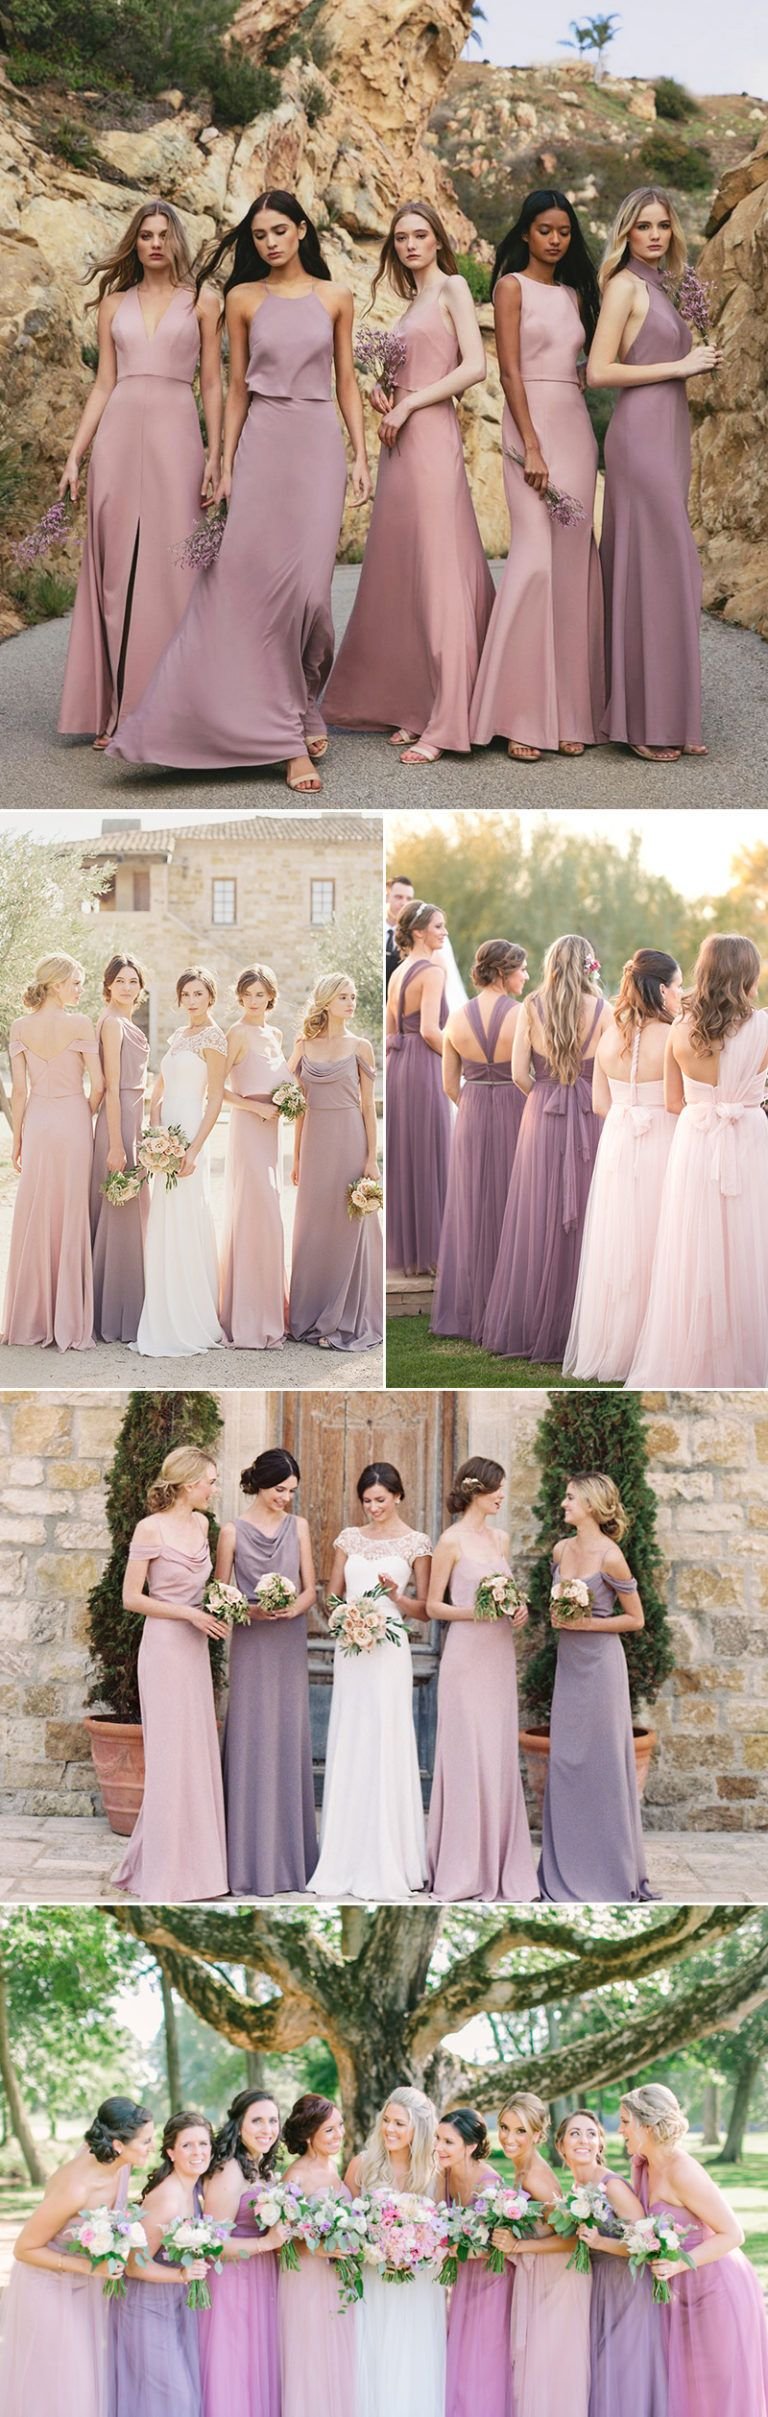 Top 5 Bridesmaid Dress Color Combinations For Spring And Summer Weddings Featuring Unique Mismatched Looks Wedding Strapless Bridesmaid Dress Colors Bridesmaid Dresses Mismatched Purple [ 2417 x 768 Pixel ]